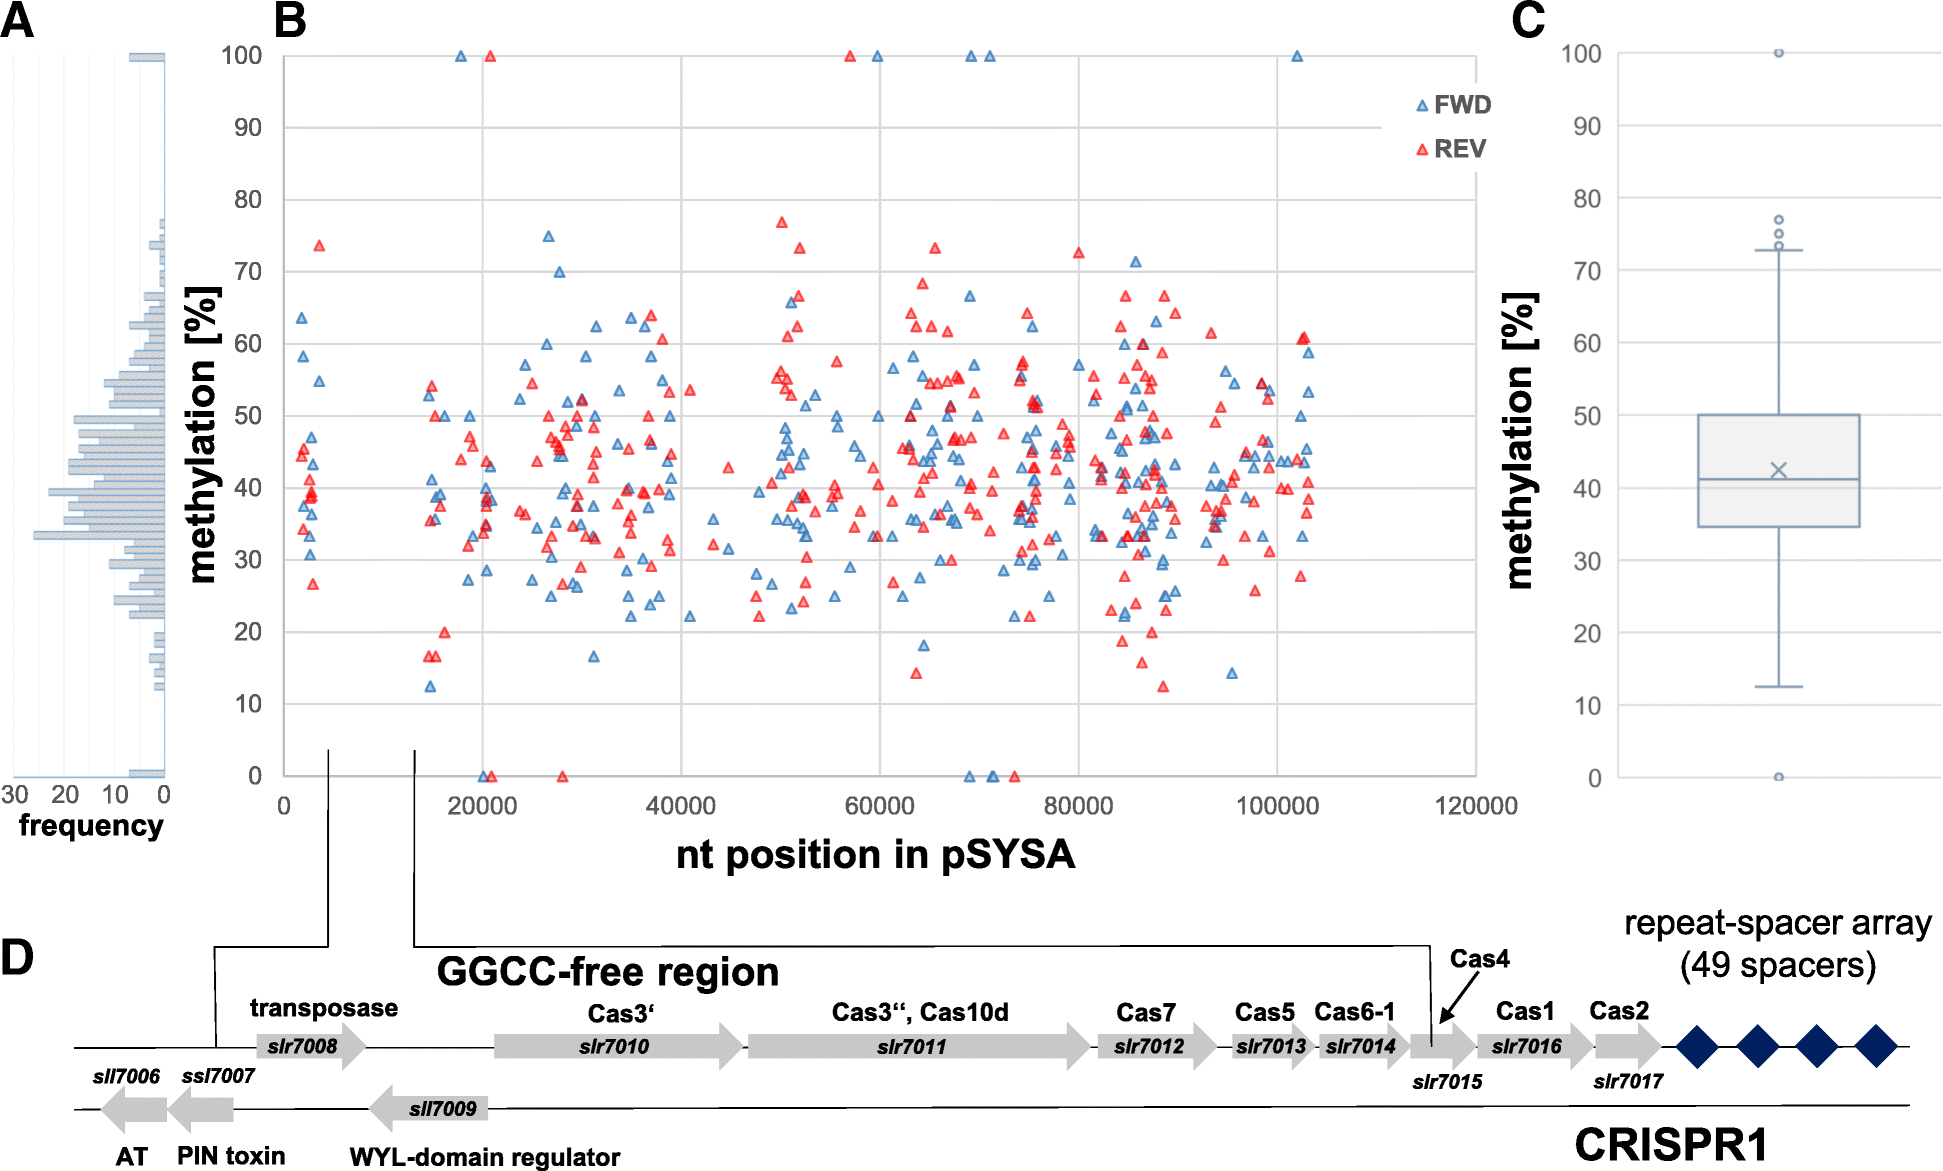 Divergent methylation of CRISPR repeats and cas genes in a